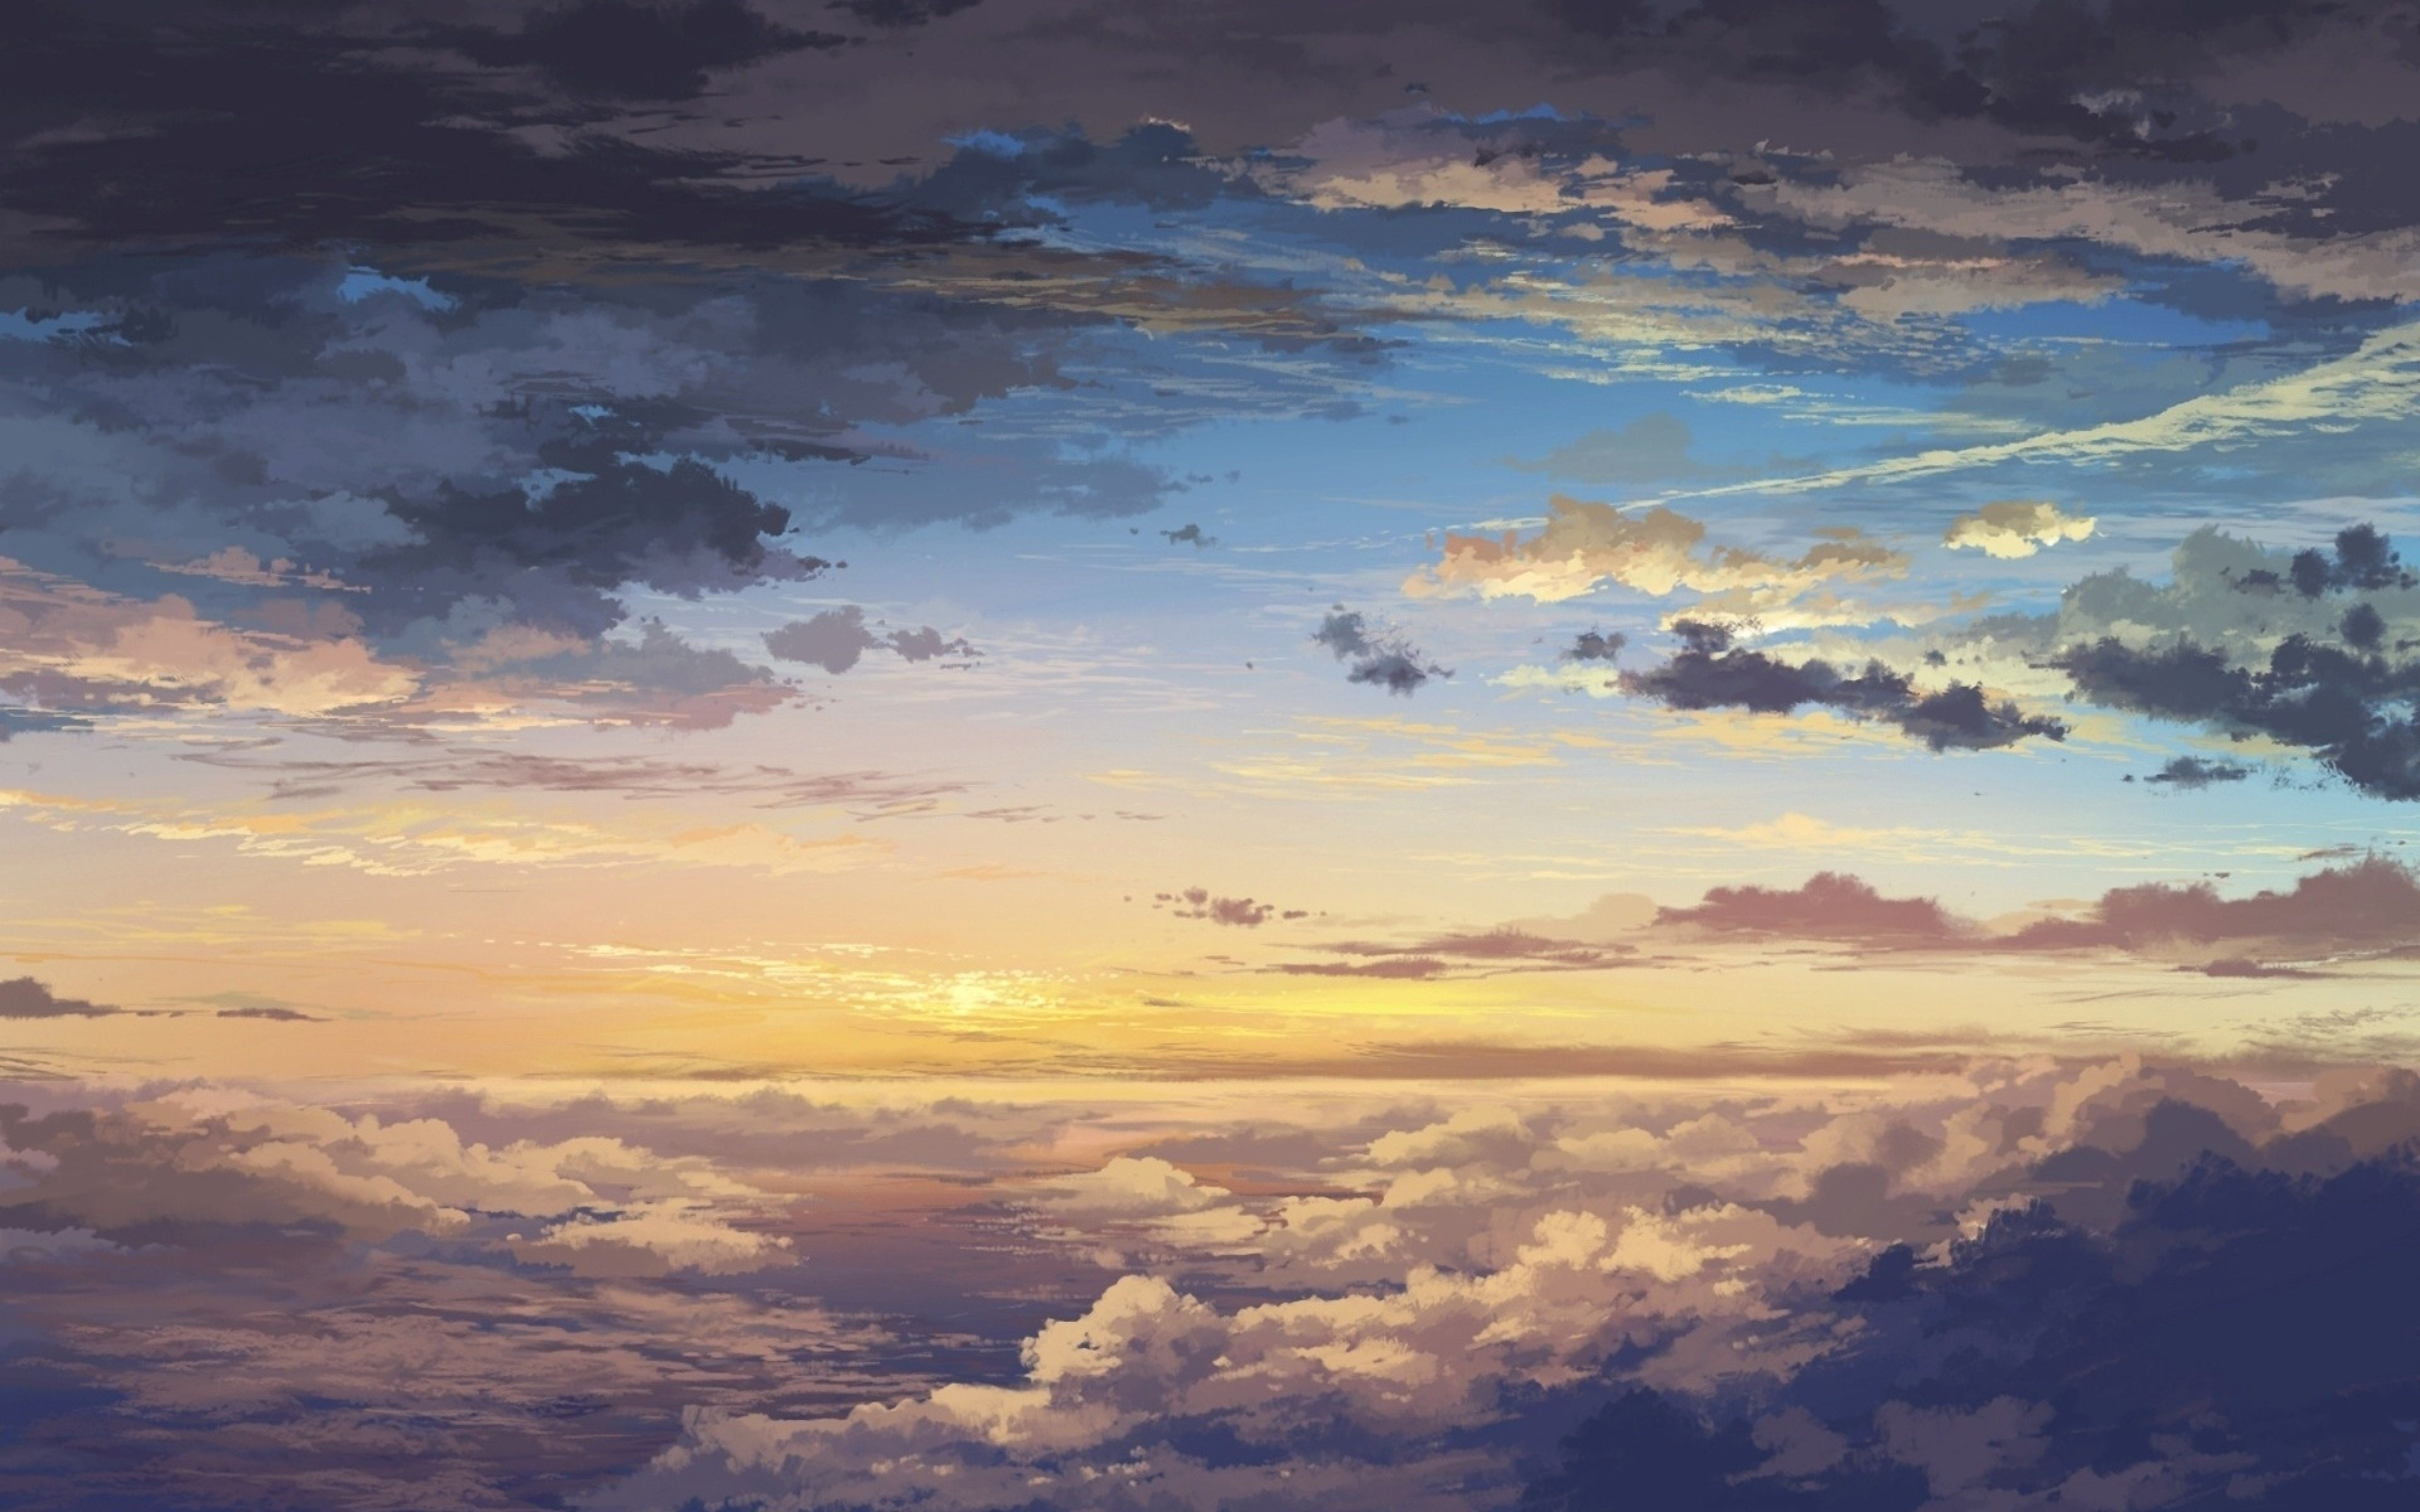 Download Wallpaper 3840x2400 Clouds, Sky, Art, Sunset